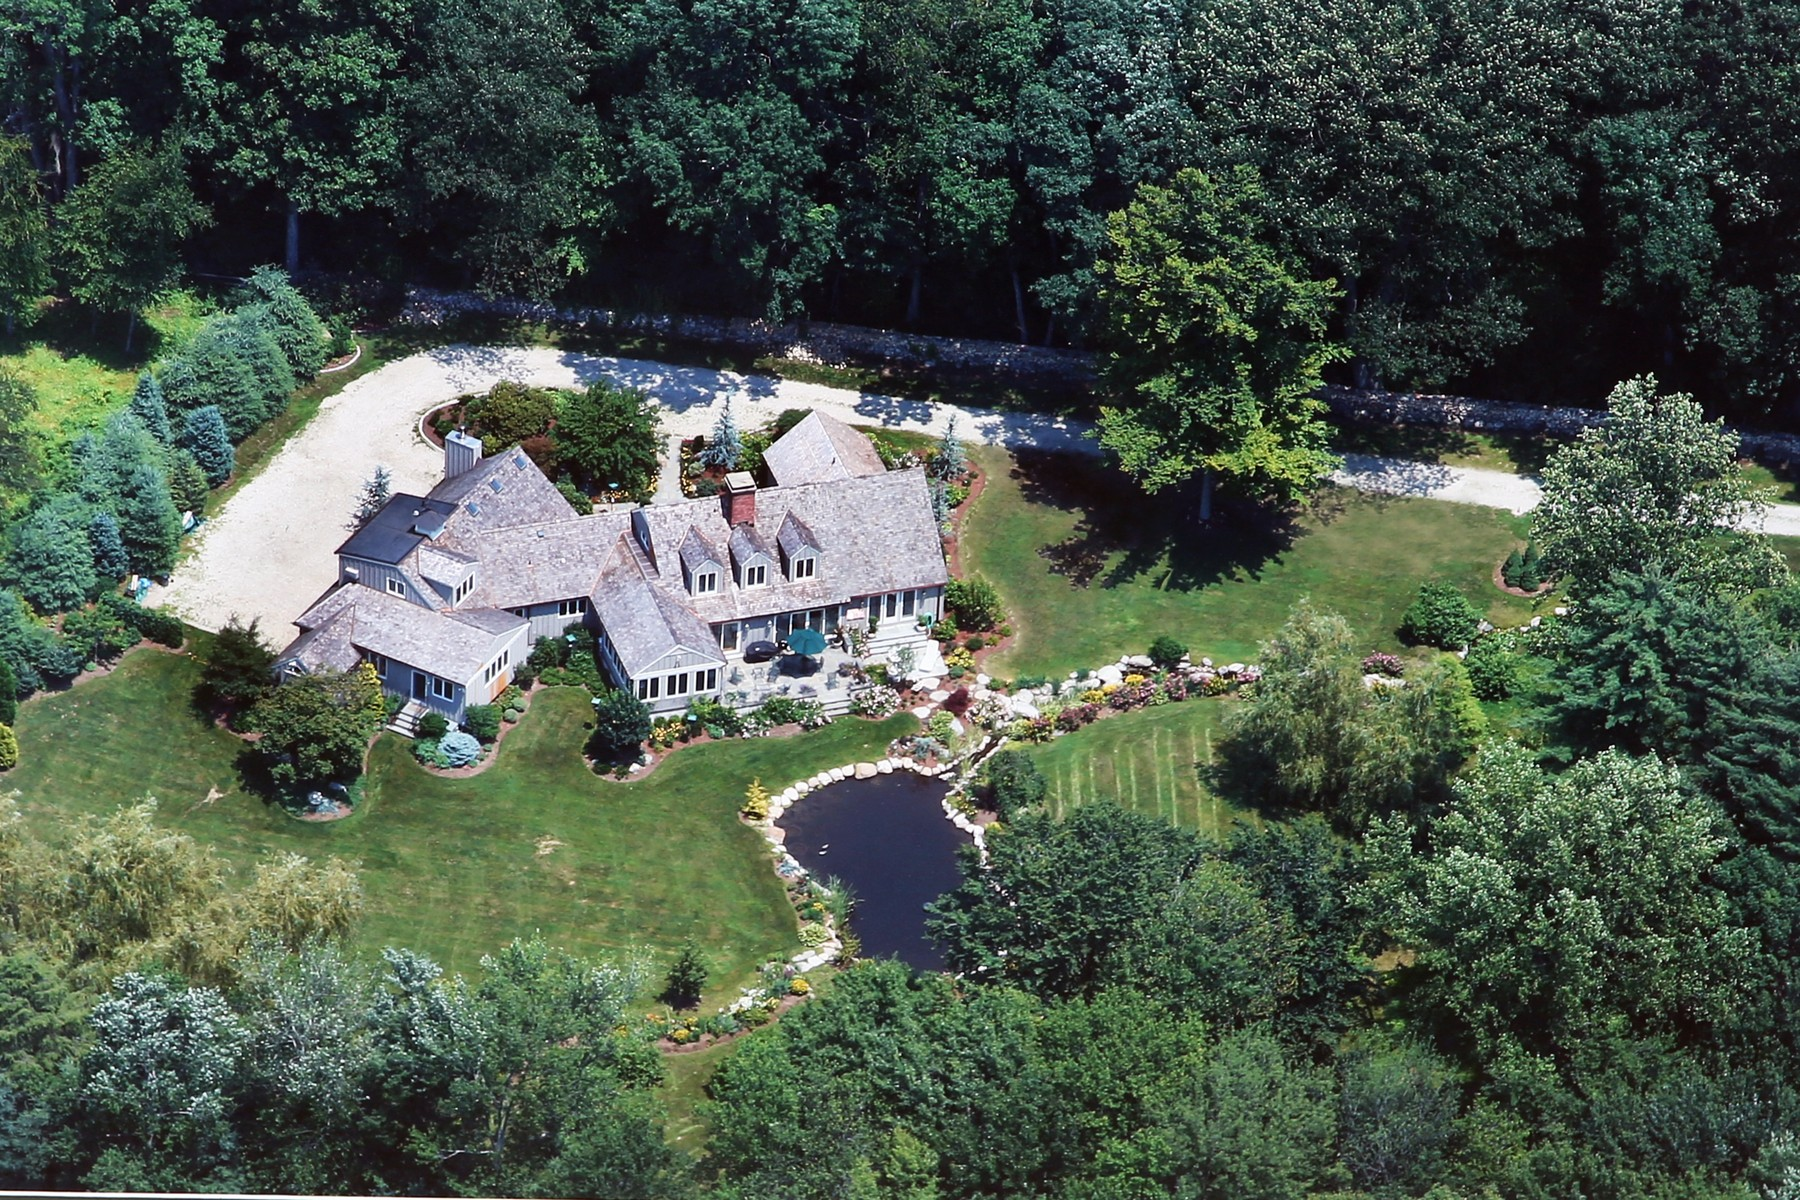 Single Family Home for Sale at Magnificent, Private Gated Custom Home in Greenfield Hill 160 Longmeadow Road Fairfield, Connecticut, 06824 United States